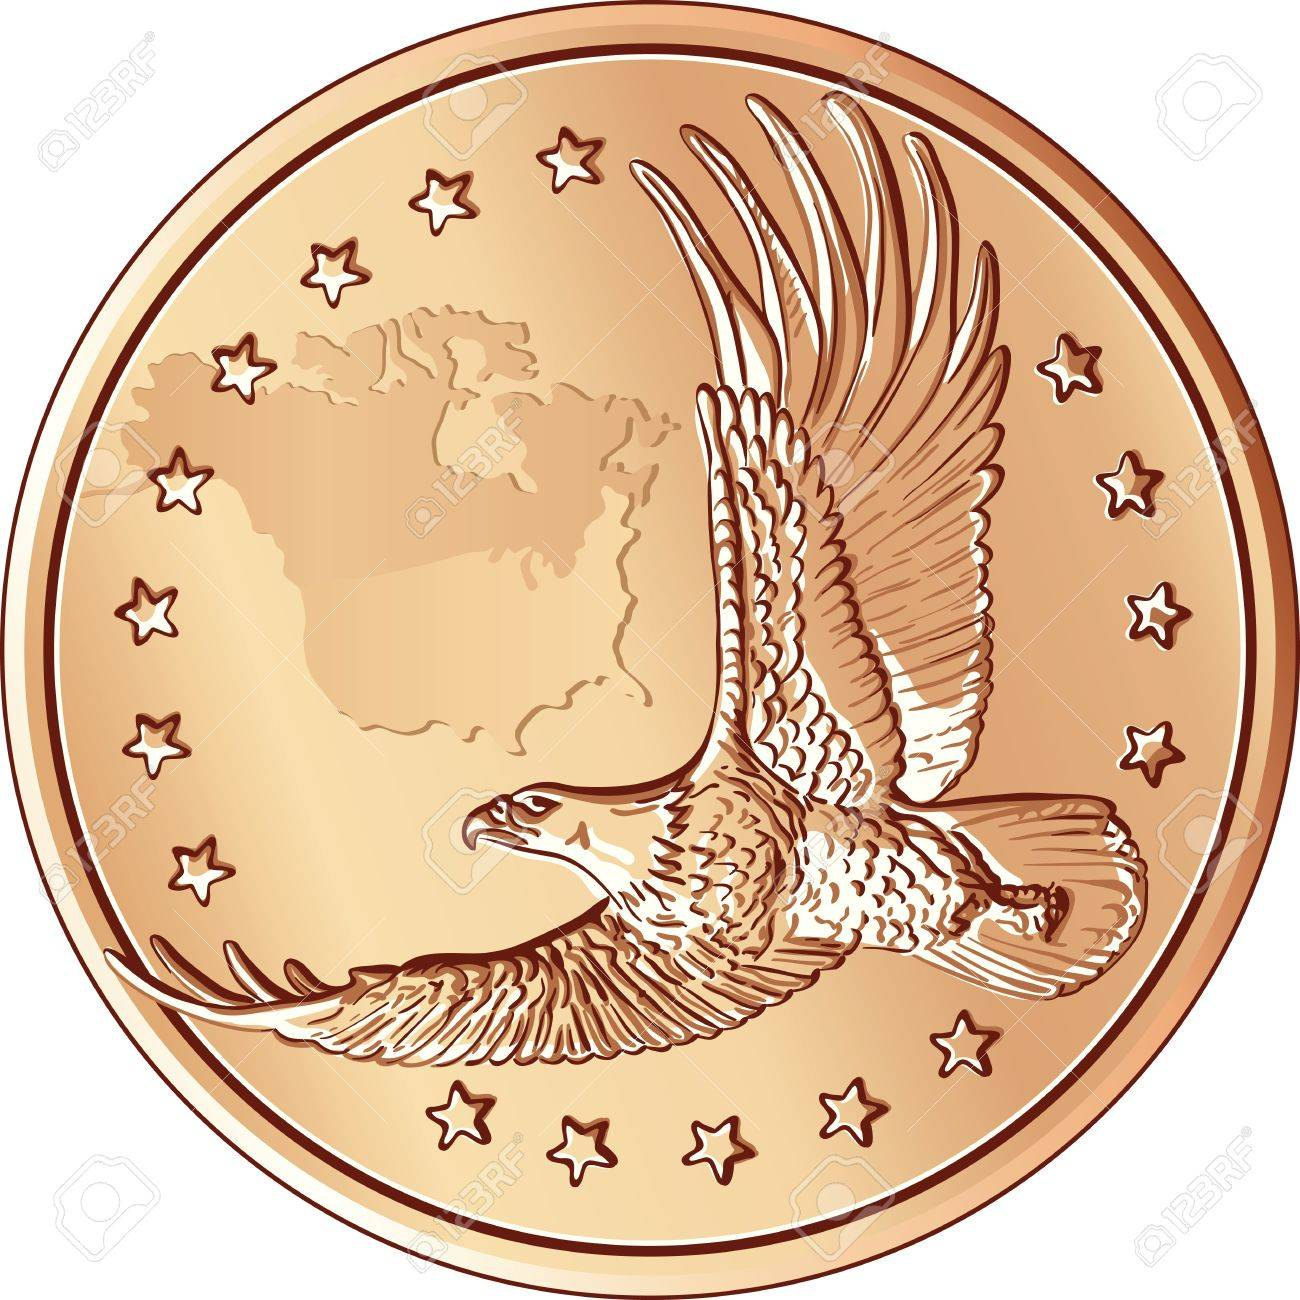 Dollar coins with the image of a flying eagle and stars Stock Vector - 10412924